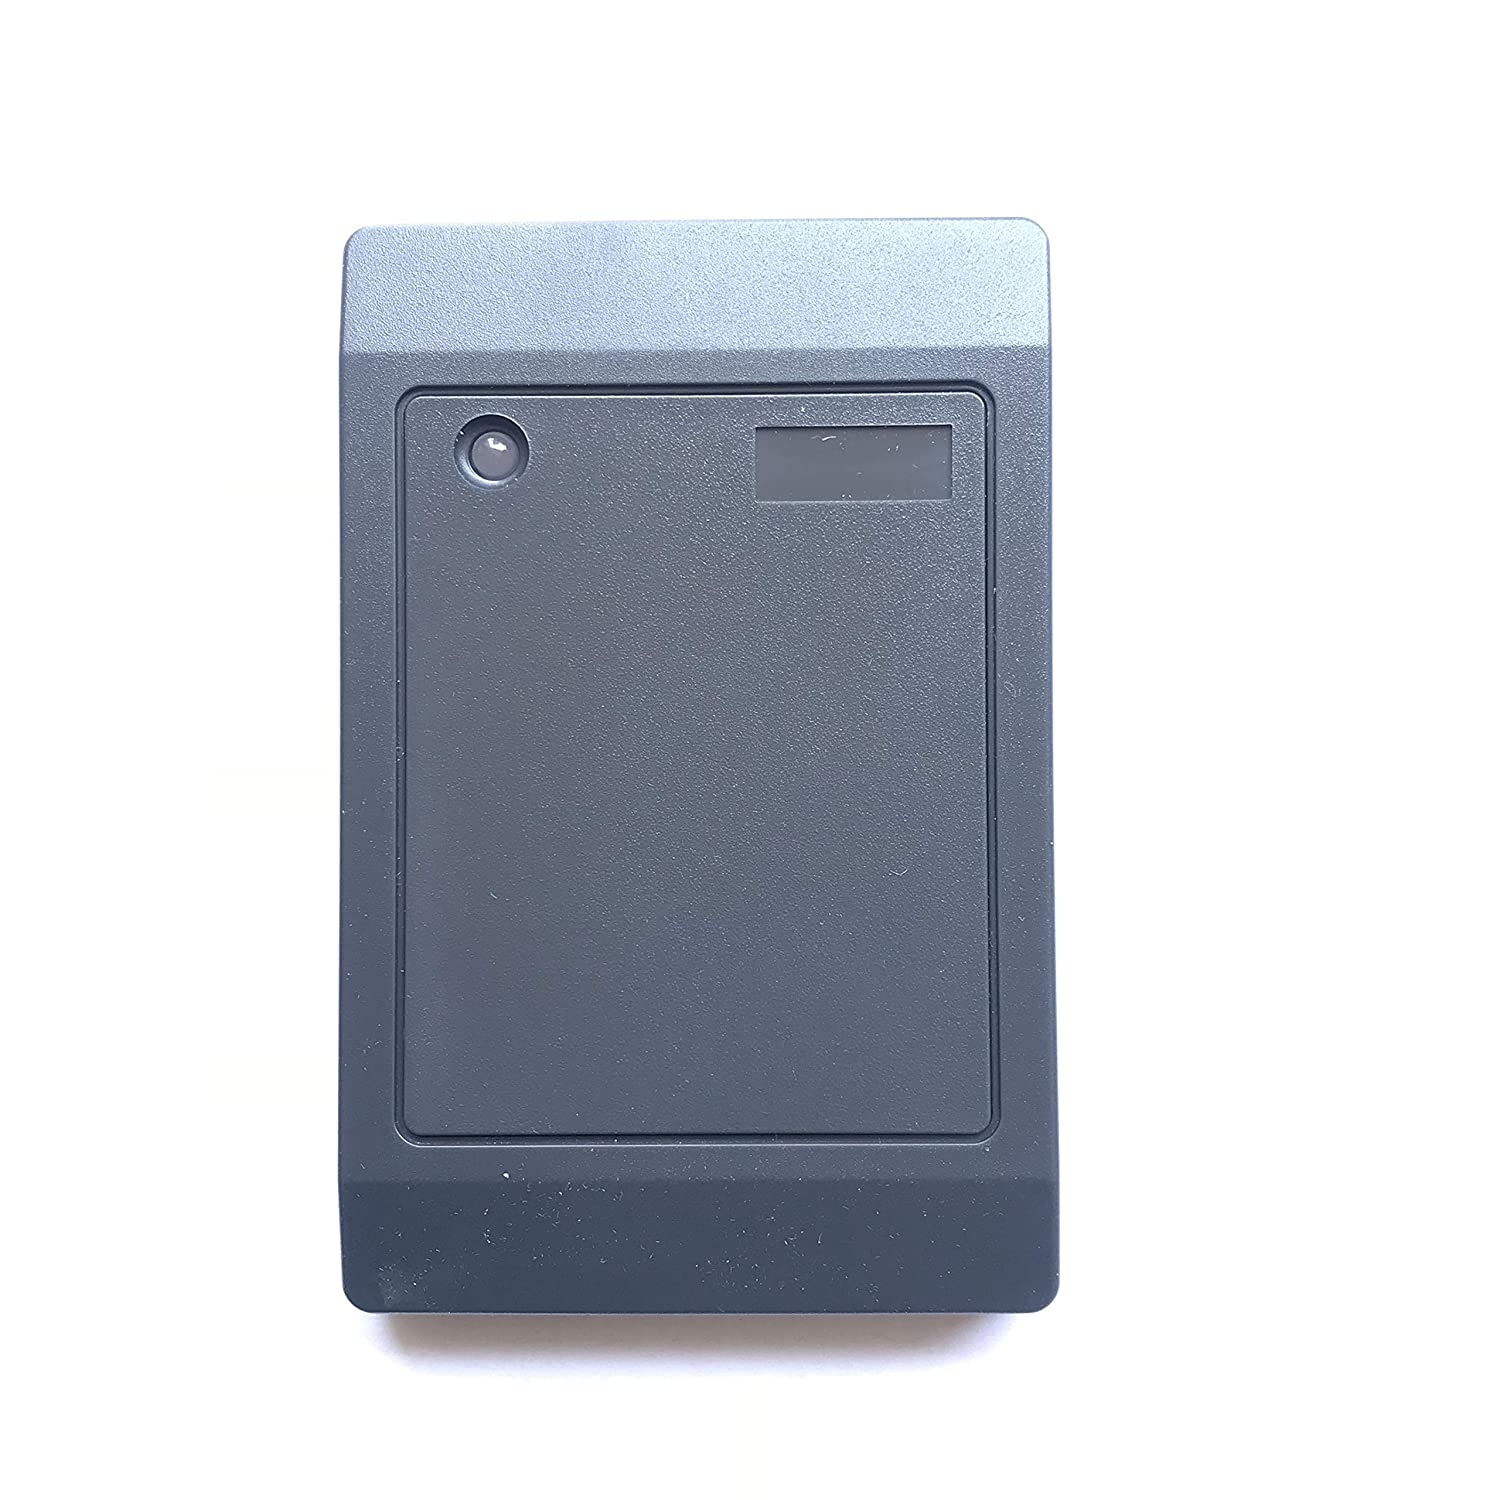 Dual Frequency 125khz and 13.56MHZ Waterproof WG26//34 RFID Access Control Reader